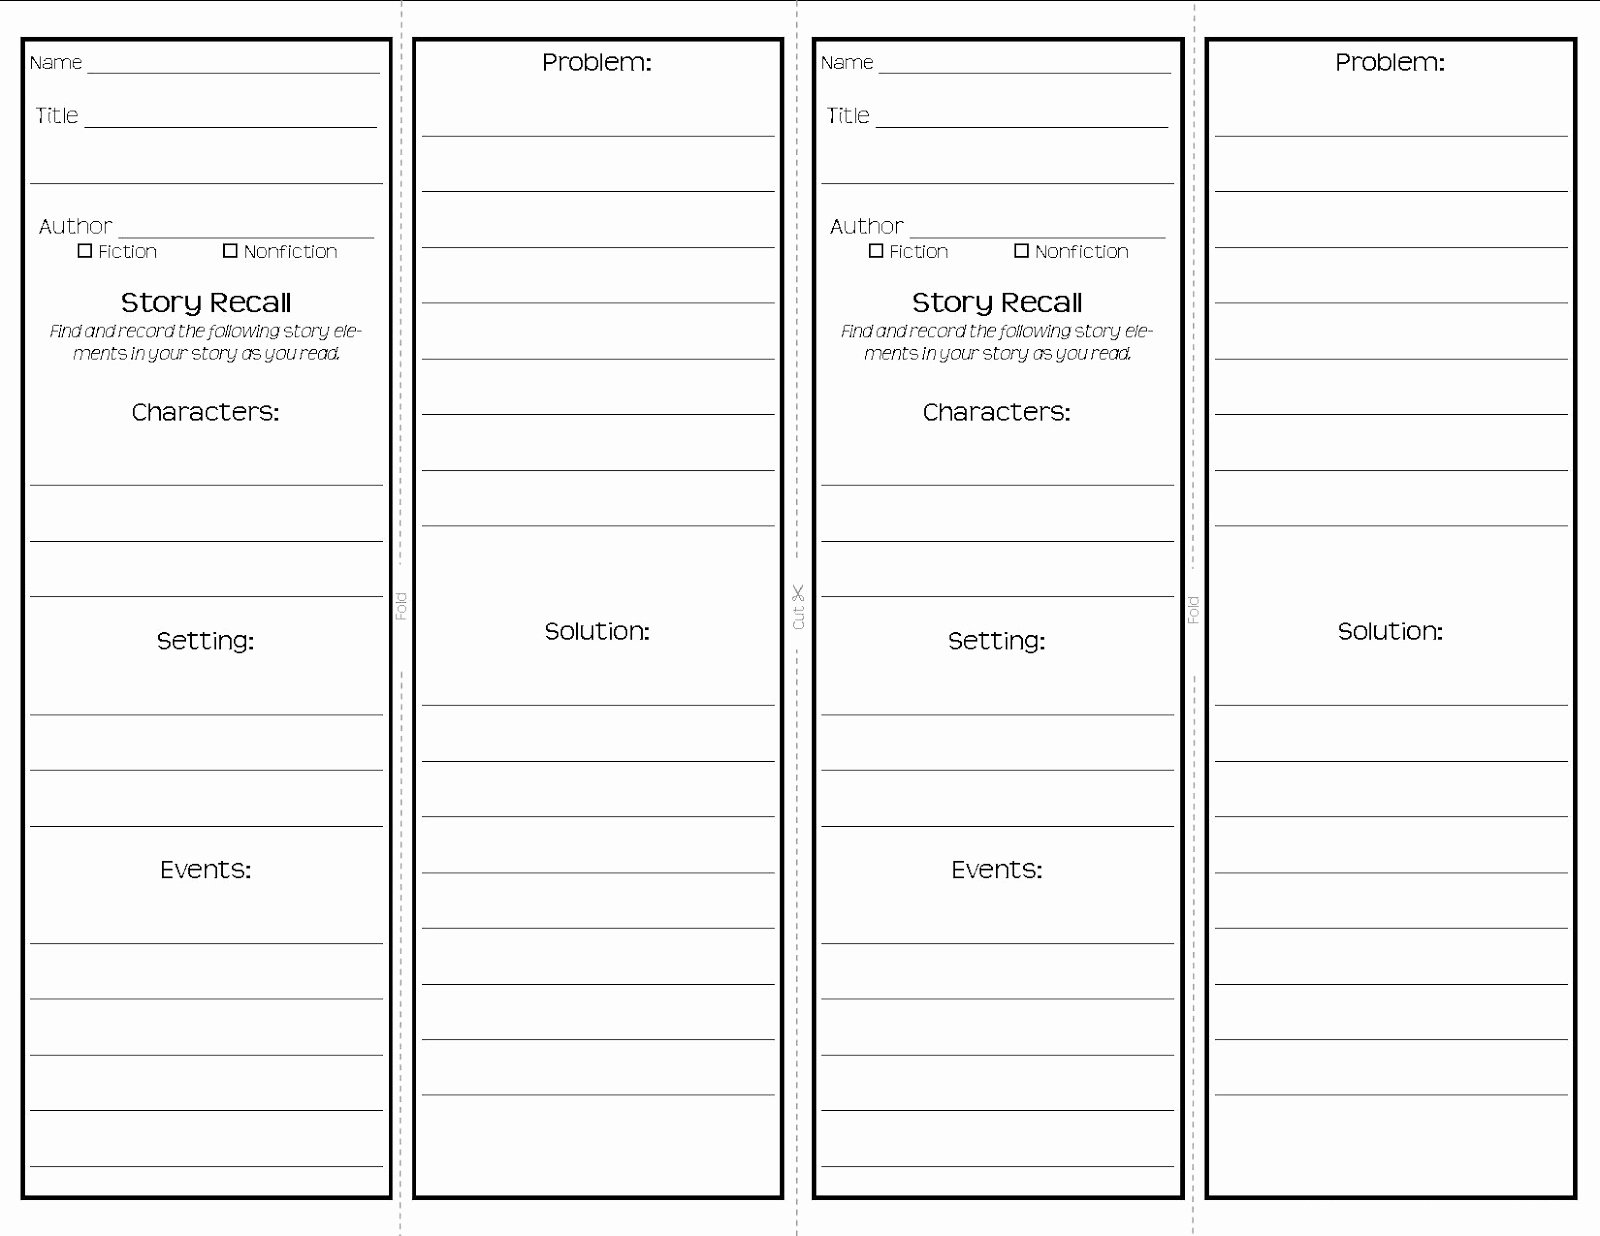 Bookmarks Templates Free Microsoft Word Fresh Bookmark Template to Print